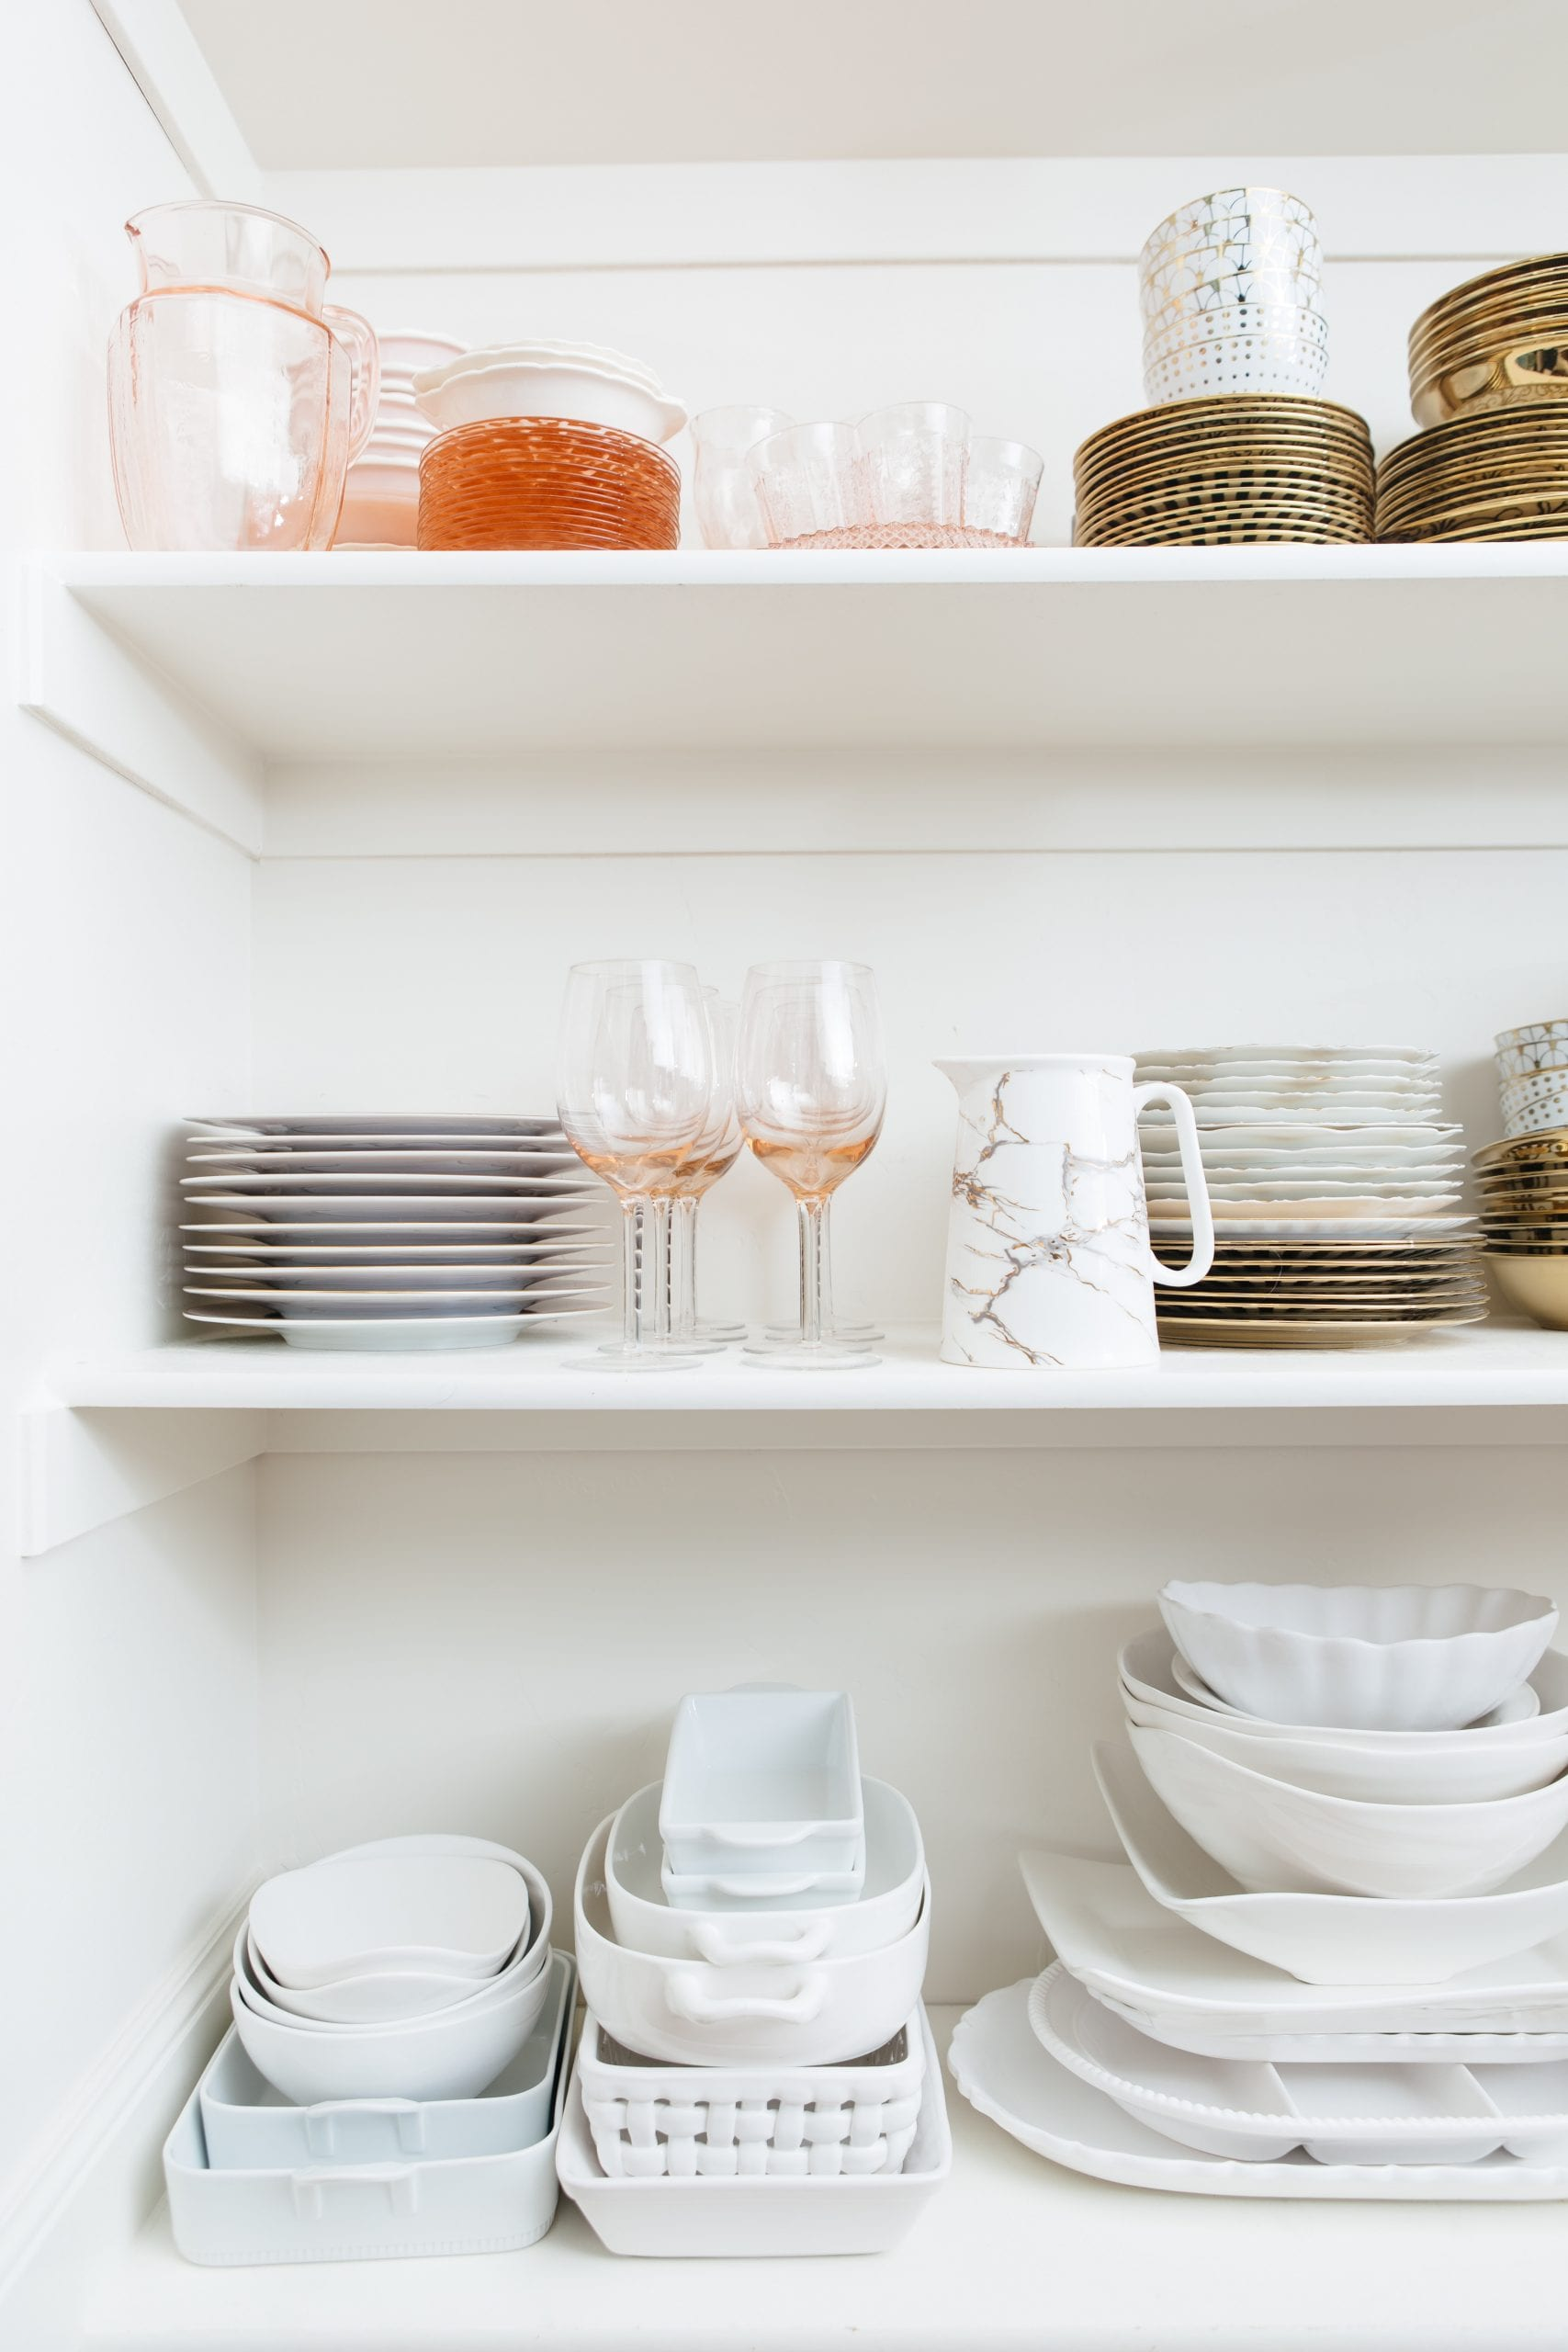 organize and store dish collection